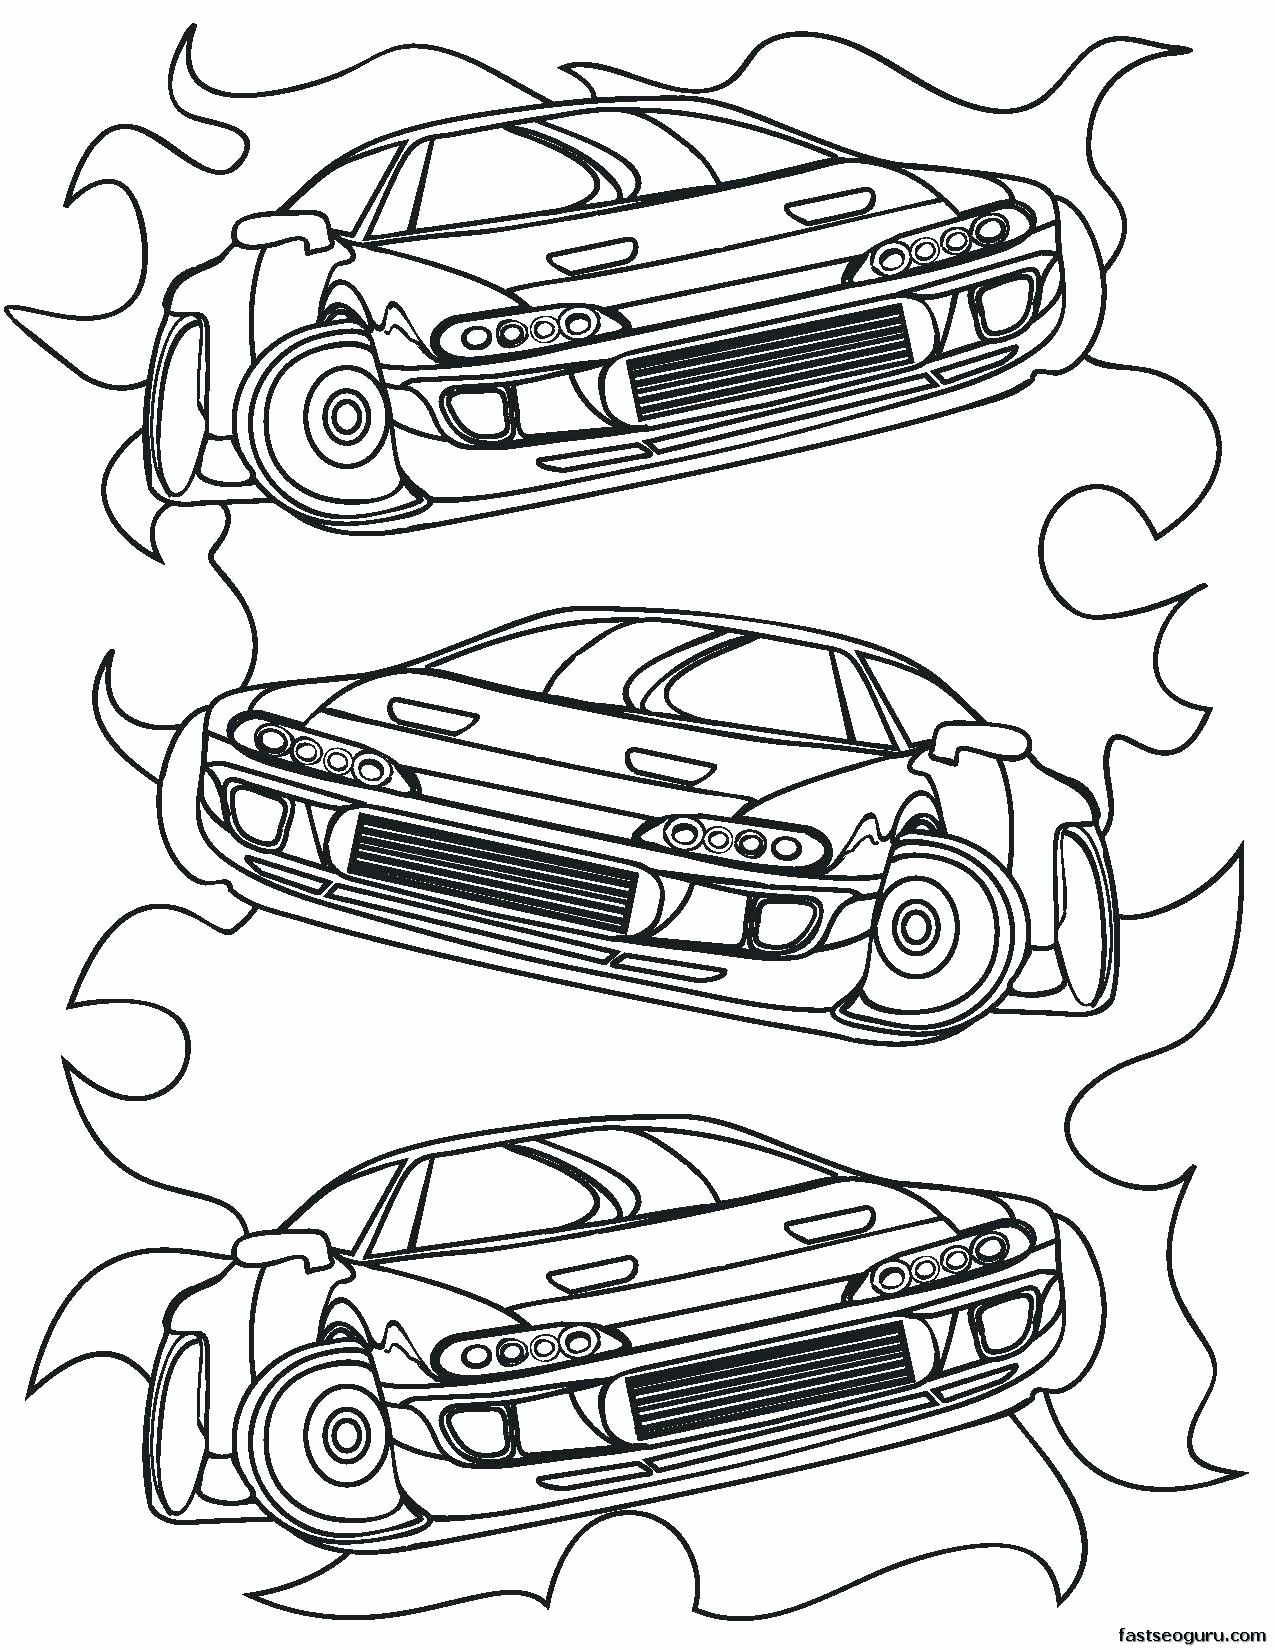 Racing Car Coloring Pages Inspirational Pages Coloring Pages Coloring Race Car Easy Printable In 2020 Cars Coloring Pages Race Car Coloring Pages Truck Coloring Pages